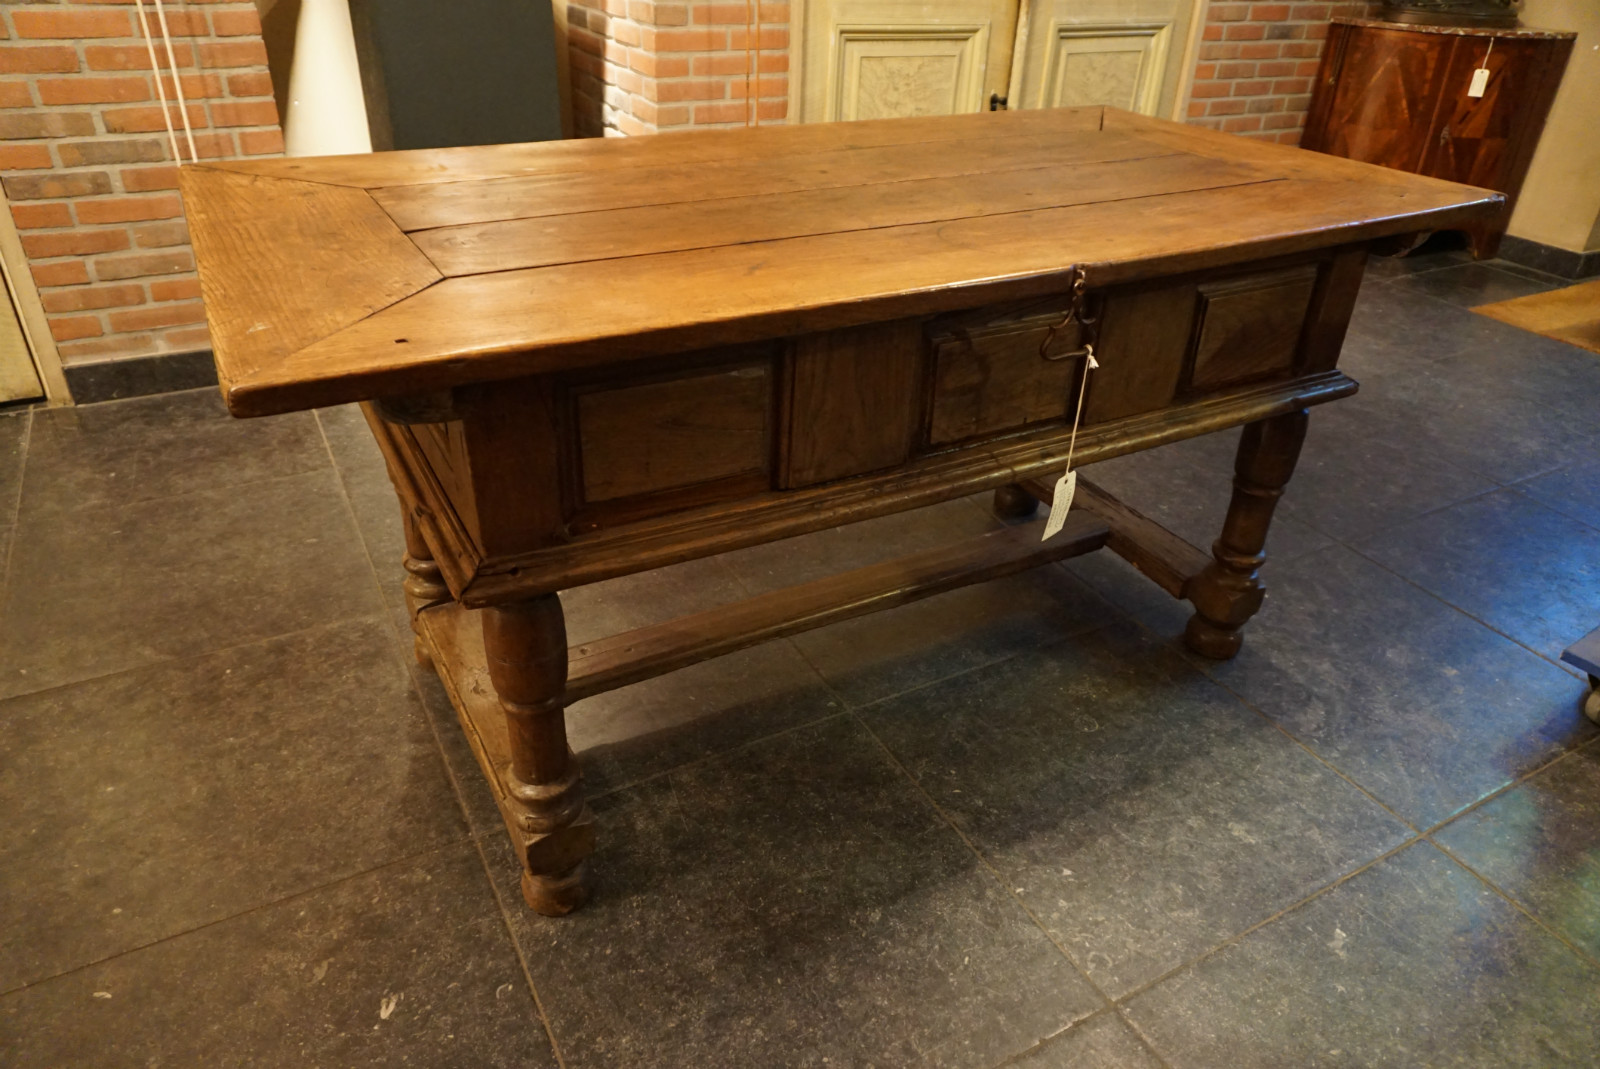 Antique French Country Table First